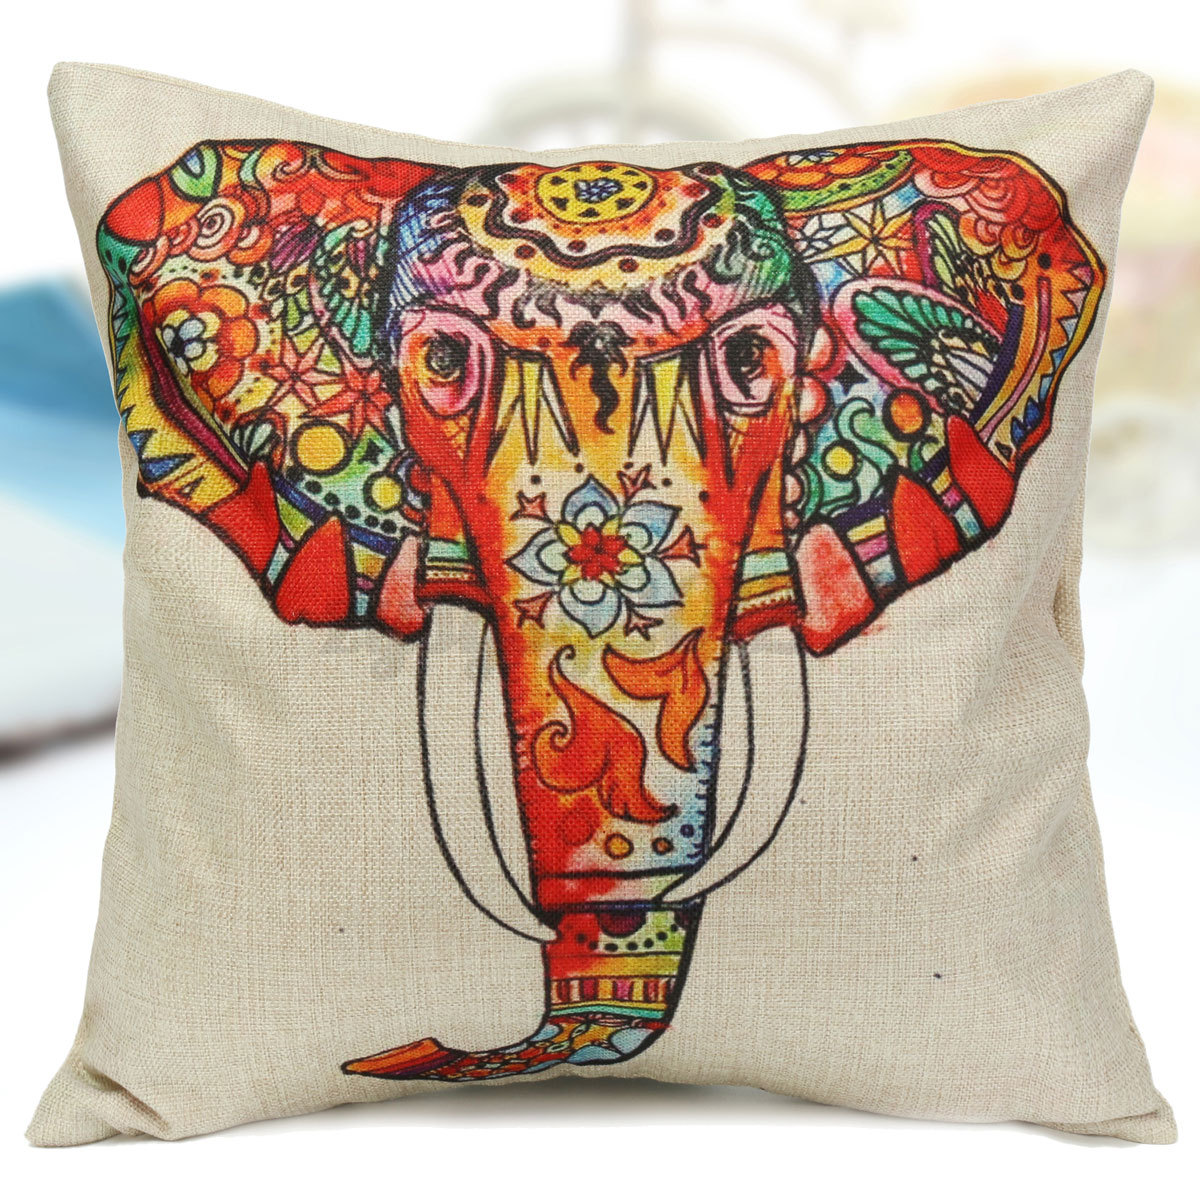 Elephant Linen Cotton Throw Pillow Case Sofa Home Decor Cushion Cover Pillowcase